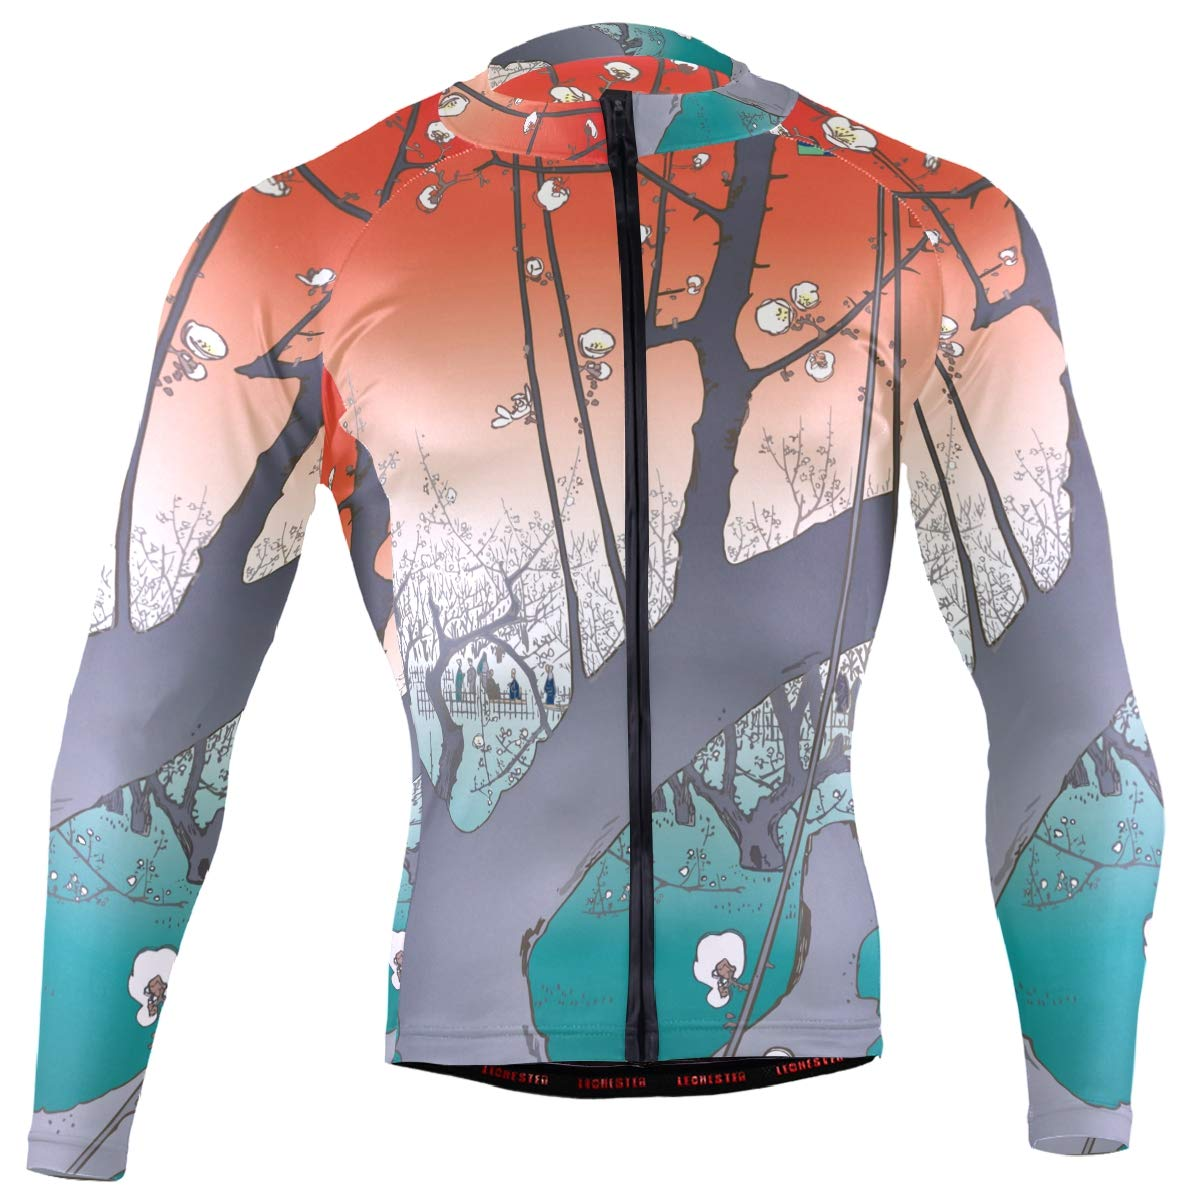 27686a239ac Amazon.com: Ukiyoe Ukiyo-E Print Men's Cycling Jersey Long Sleeve Bike  Jacket Biking Bicycle Jersey Shirt: Clothing